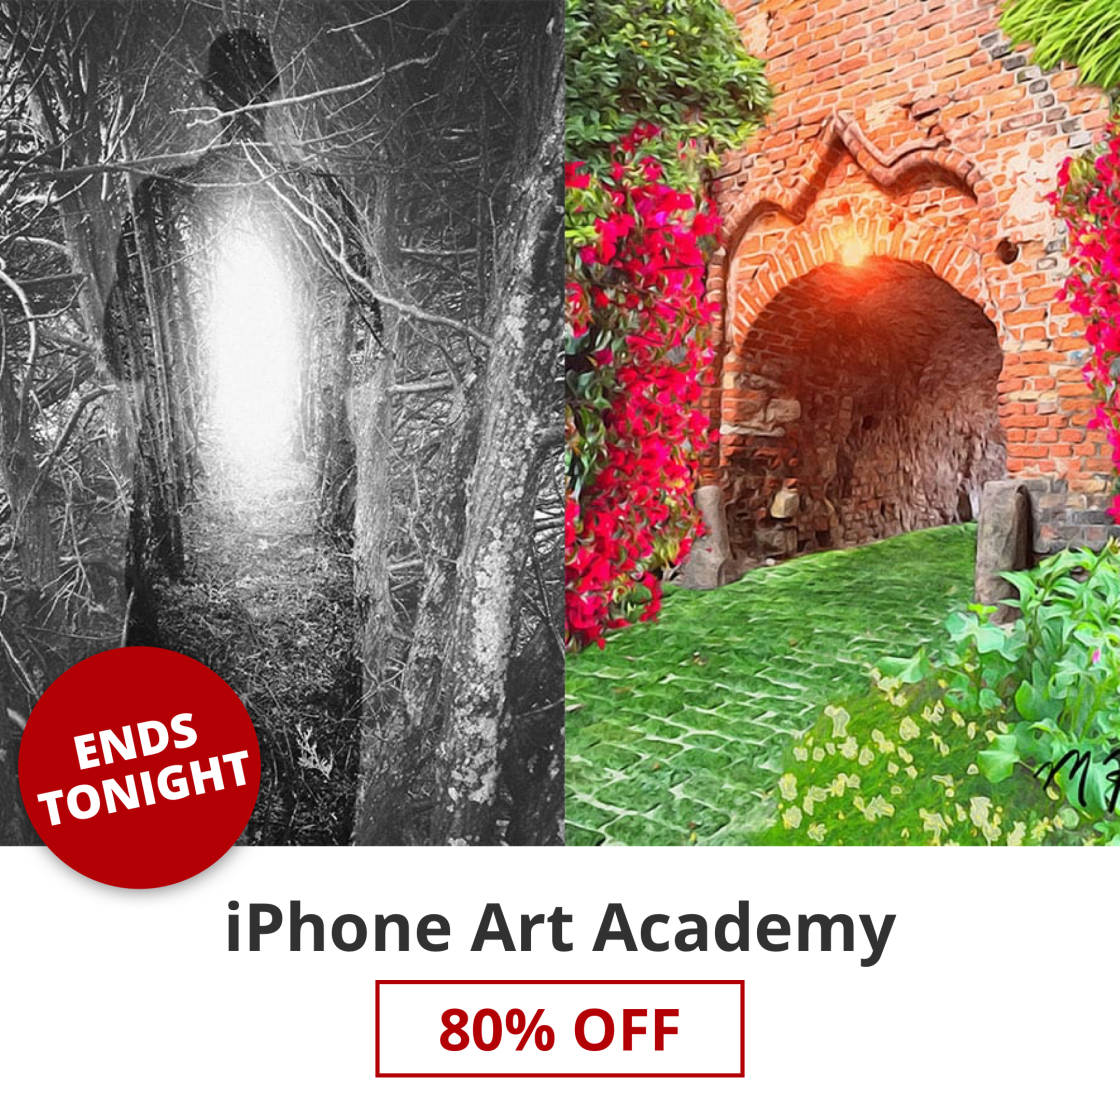 LAST CHANCE: Huge 80% Discount For iPhone Art Academy Ends Tonight!